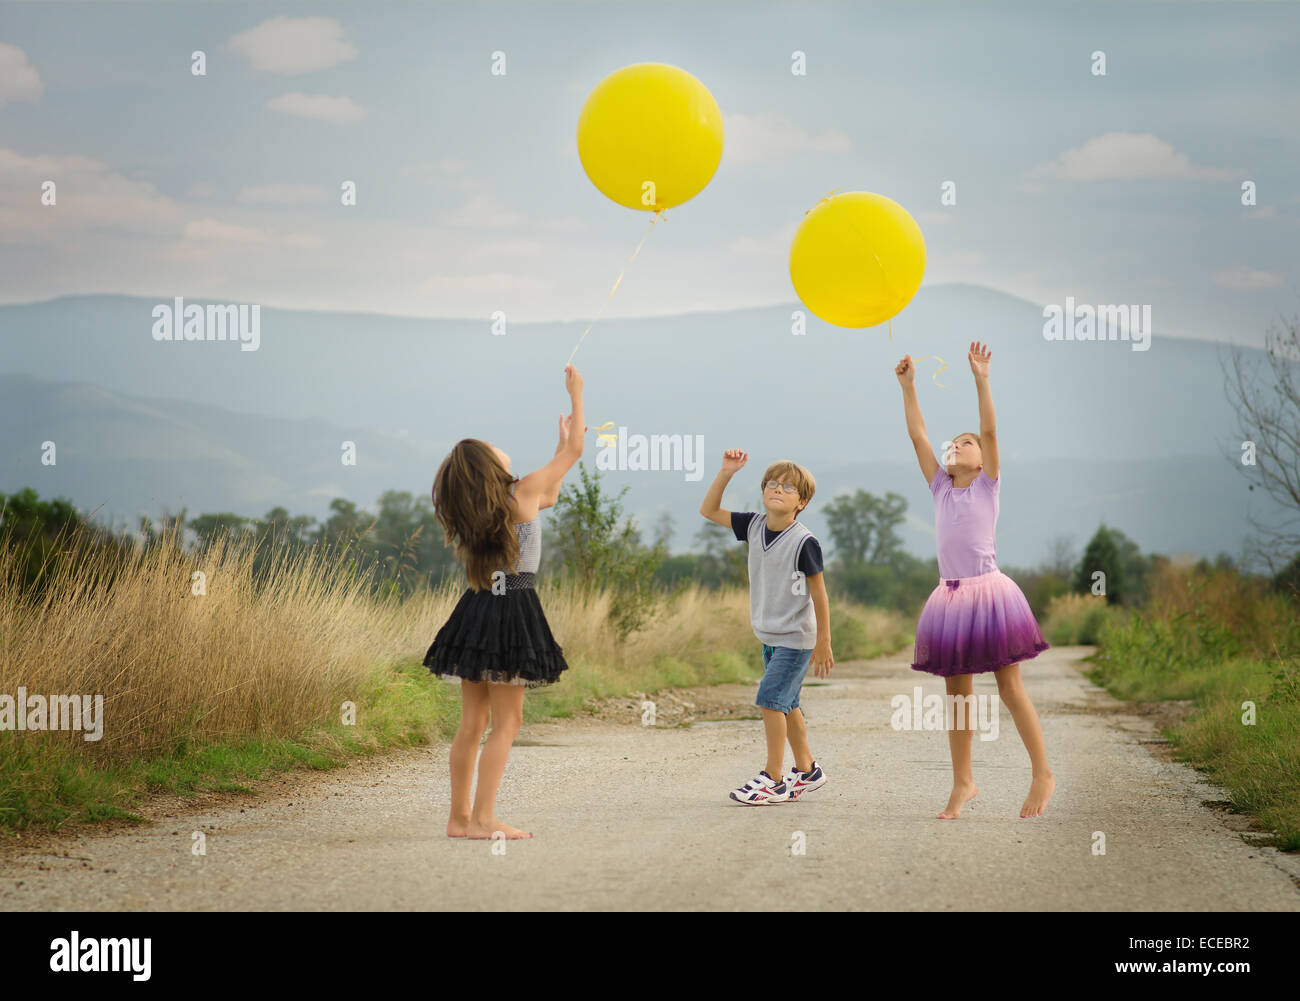 Children (6-7, 8-9) playing with balloons - Stock Image